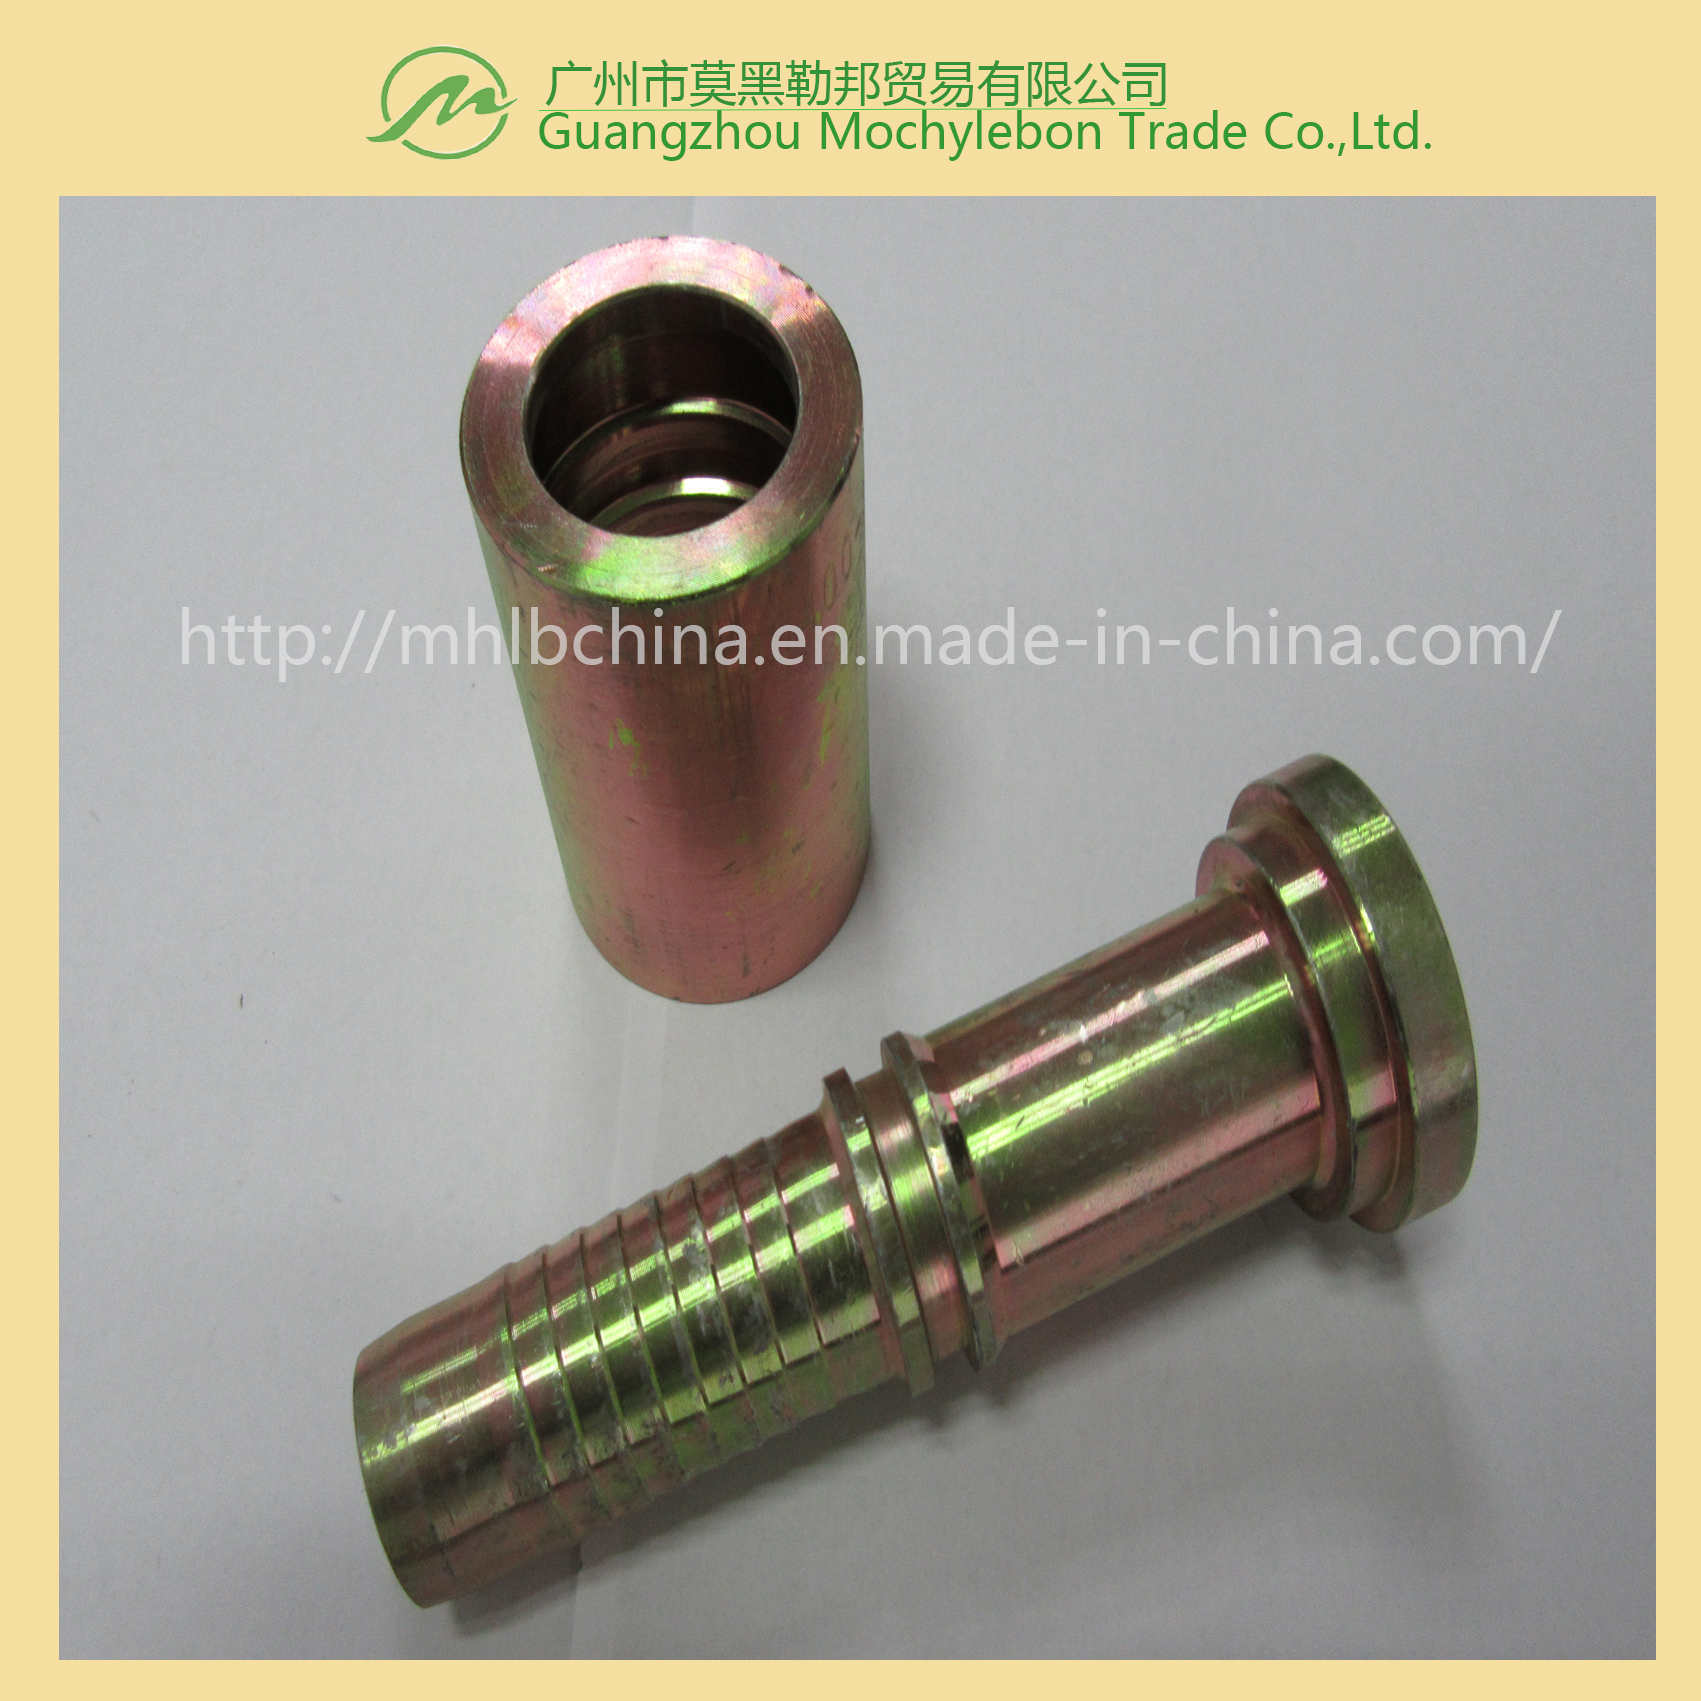 Hydraulic Fittings/Hose Fittings/Flange